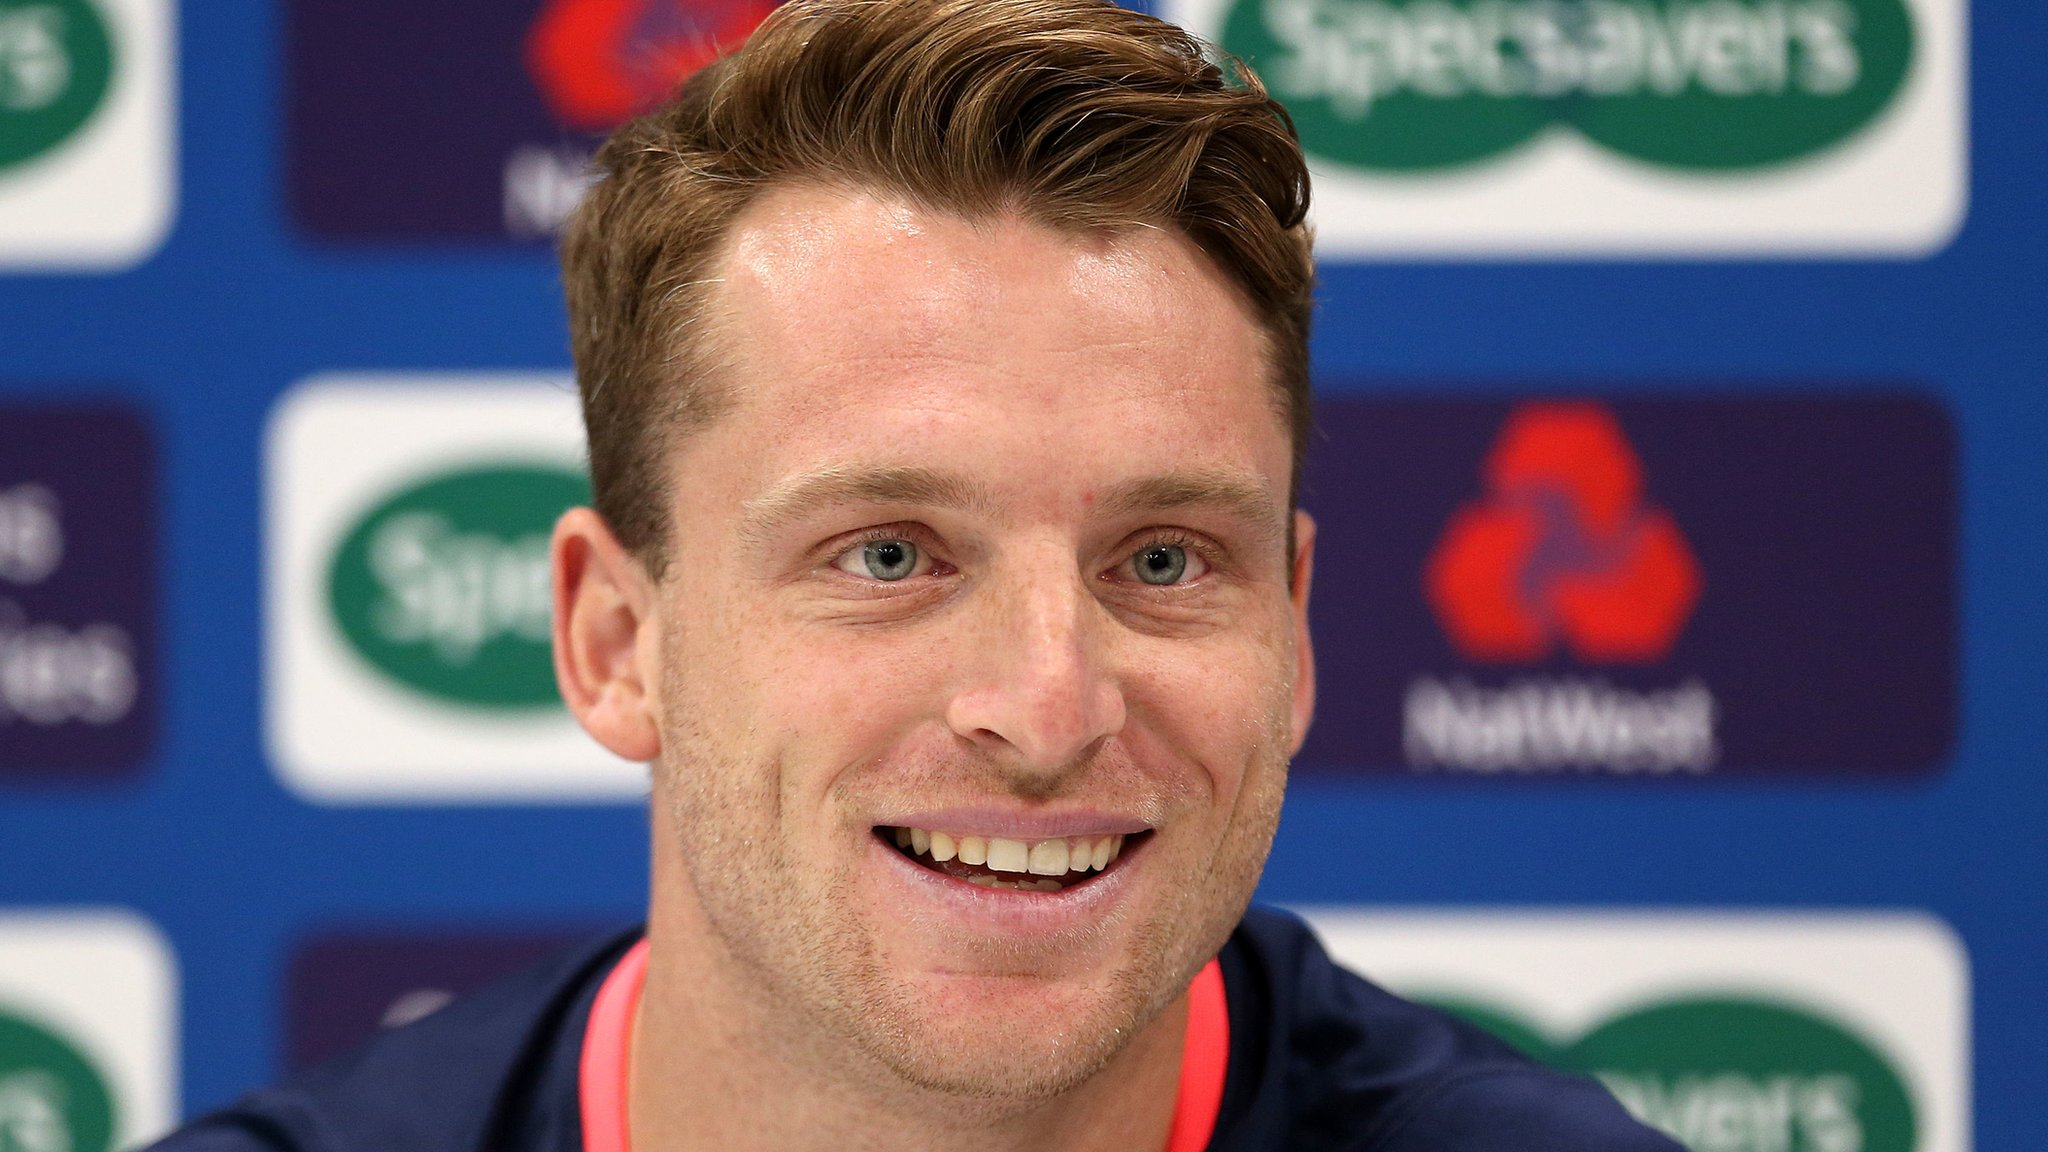 England v Pakistan: Jos Buttler says he considered quitting white-ball cricket